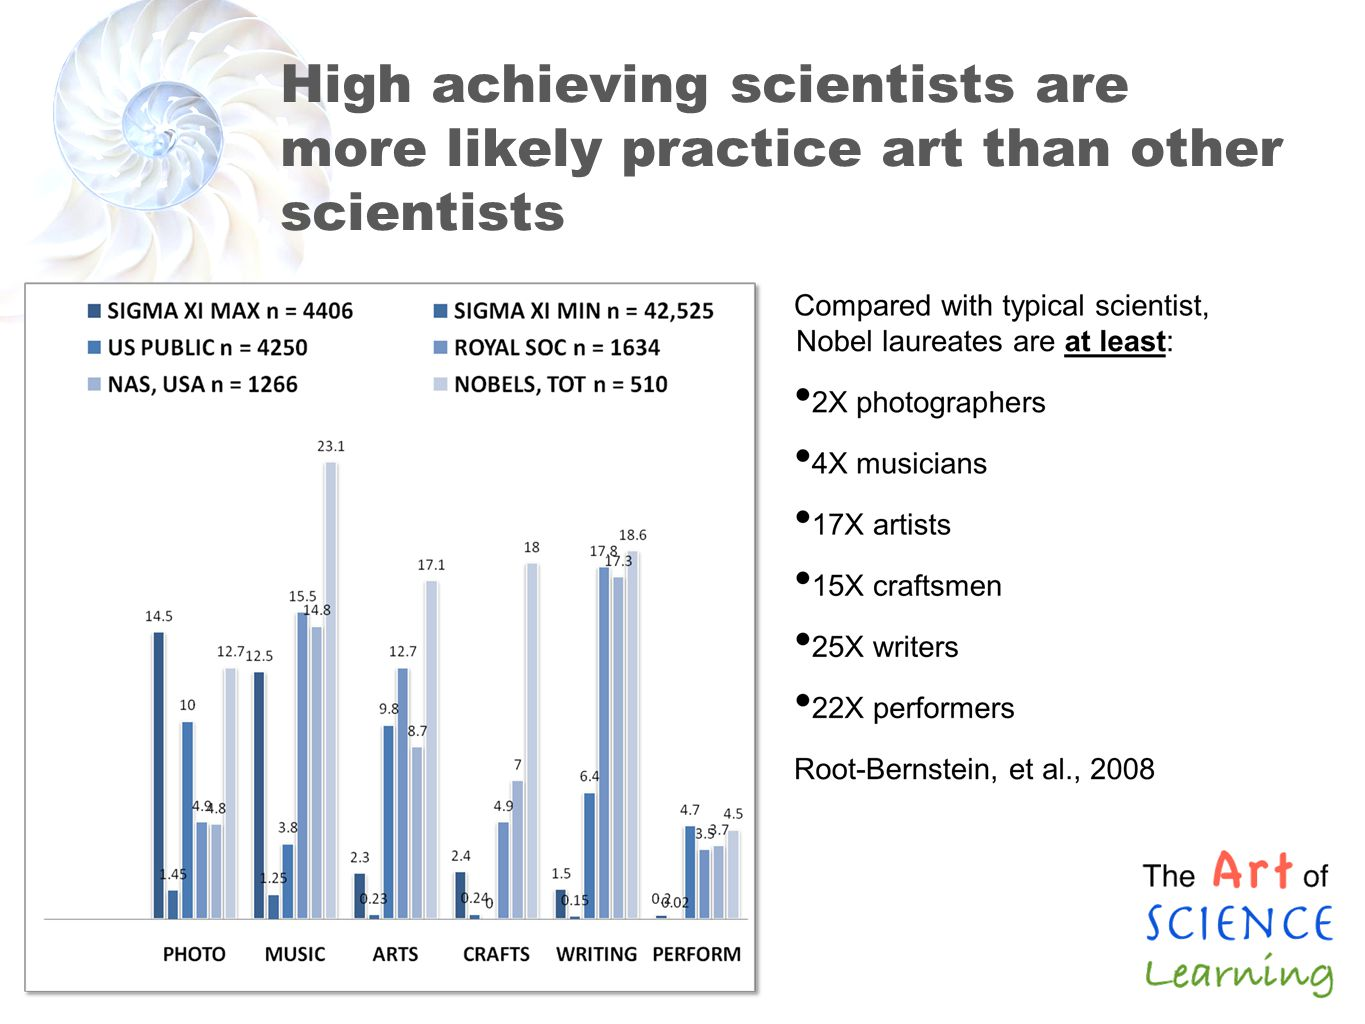 High achieving scientists are more likely practice art than other scientists